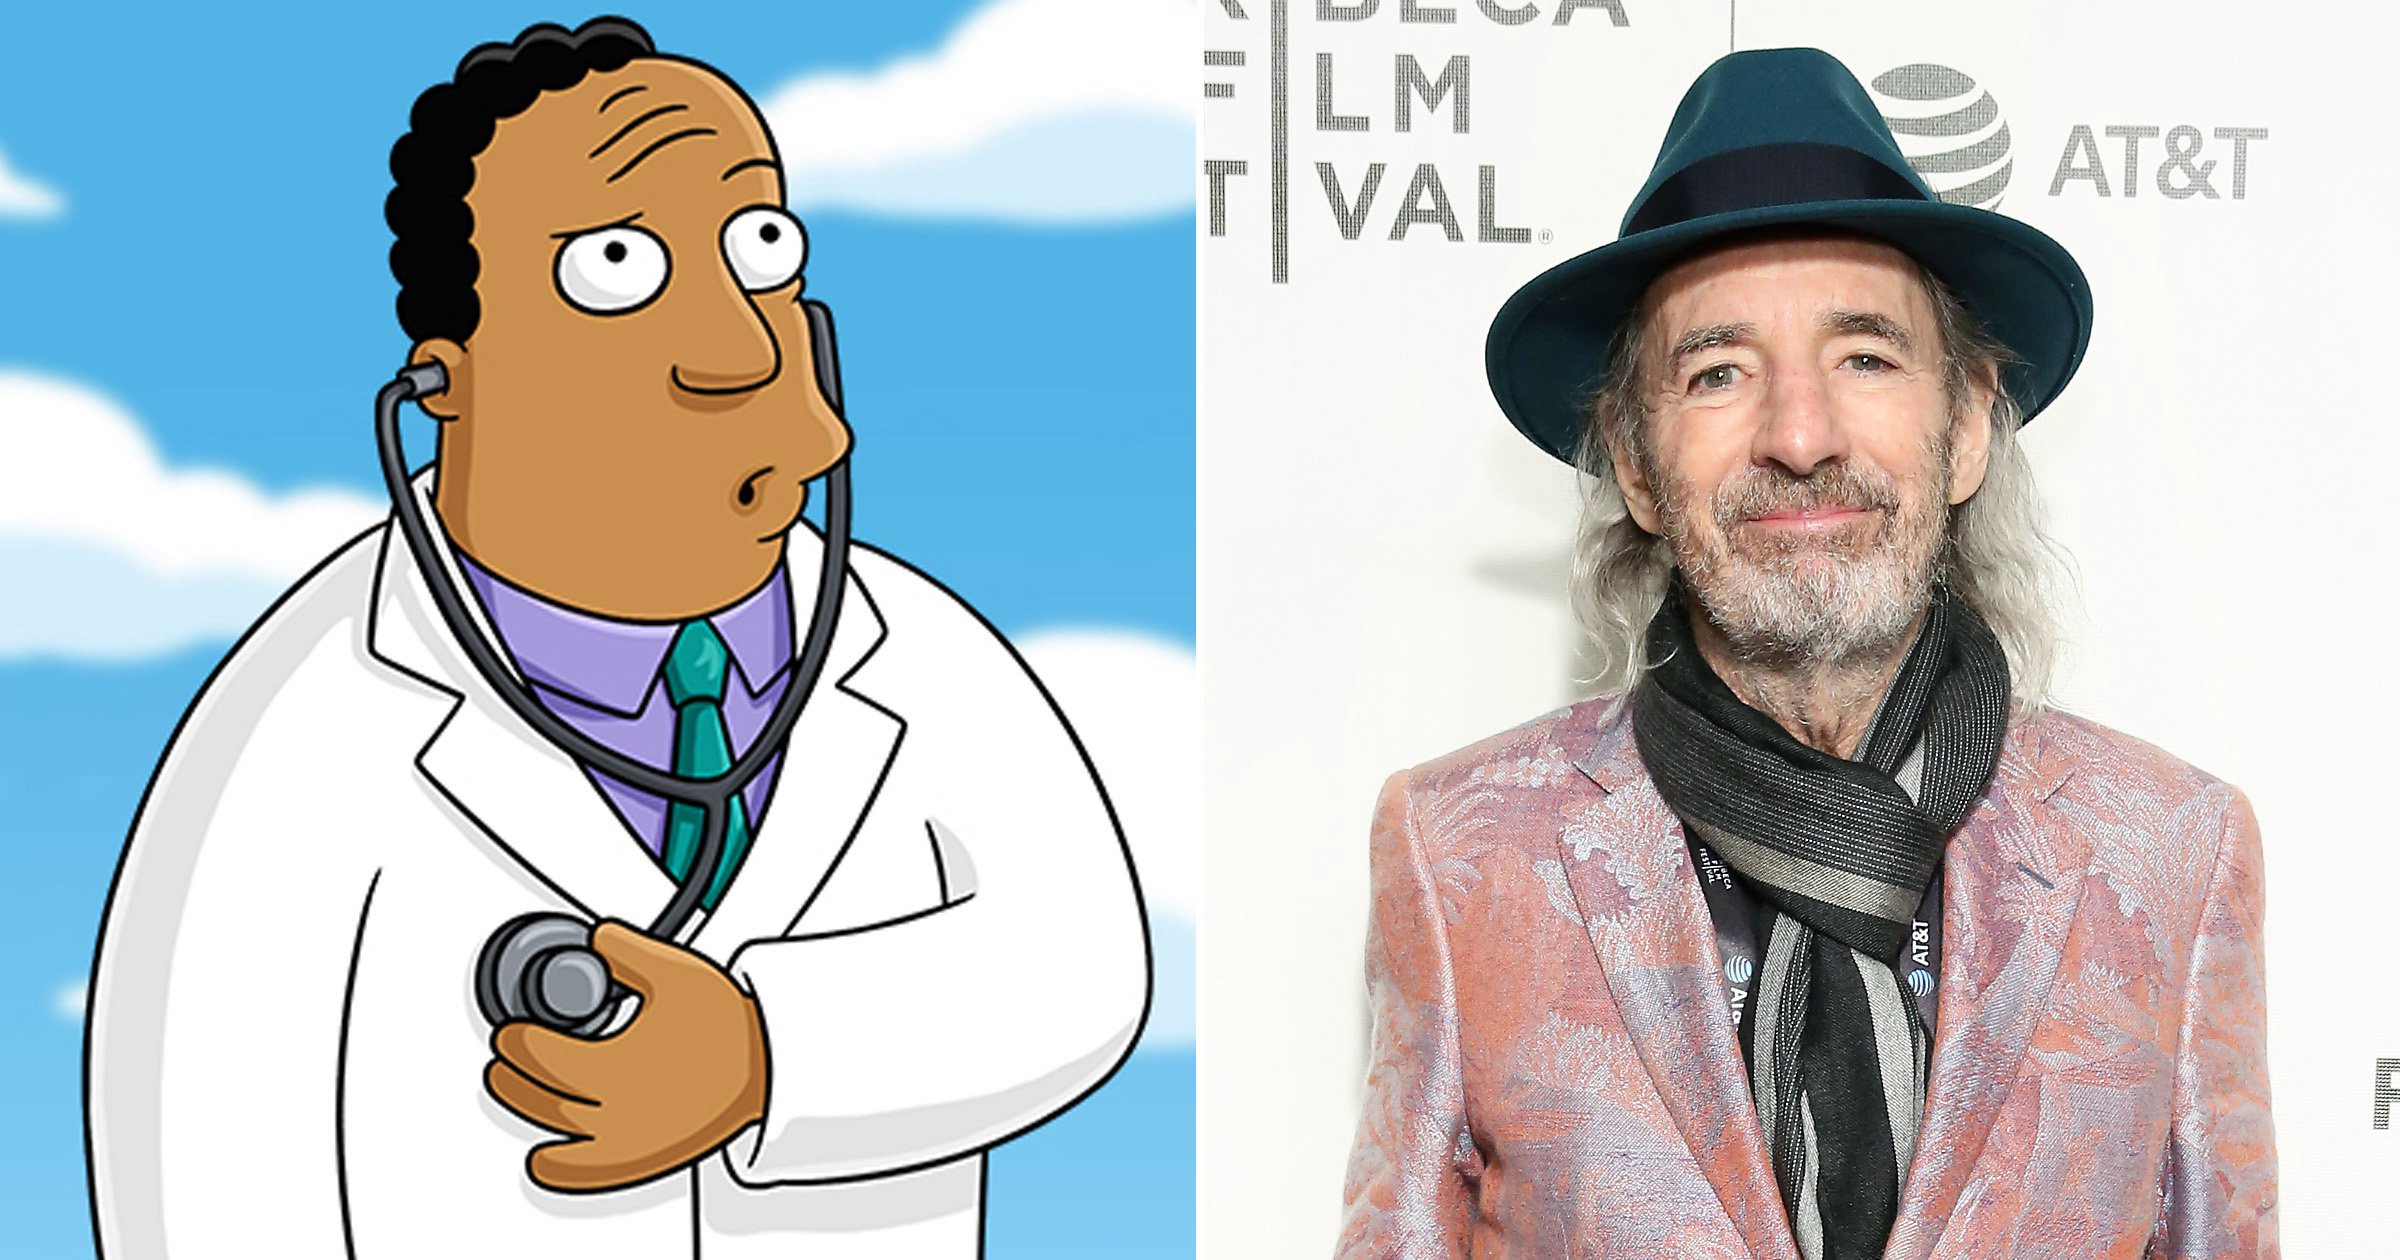 The Simpsons' black character Dr. Hibbert will no longer be voiced by white actor Harry Shearer